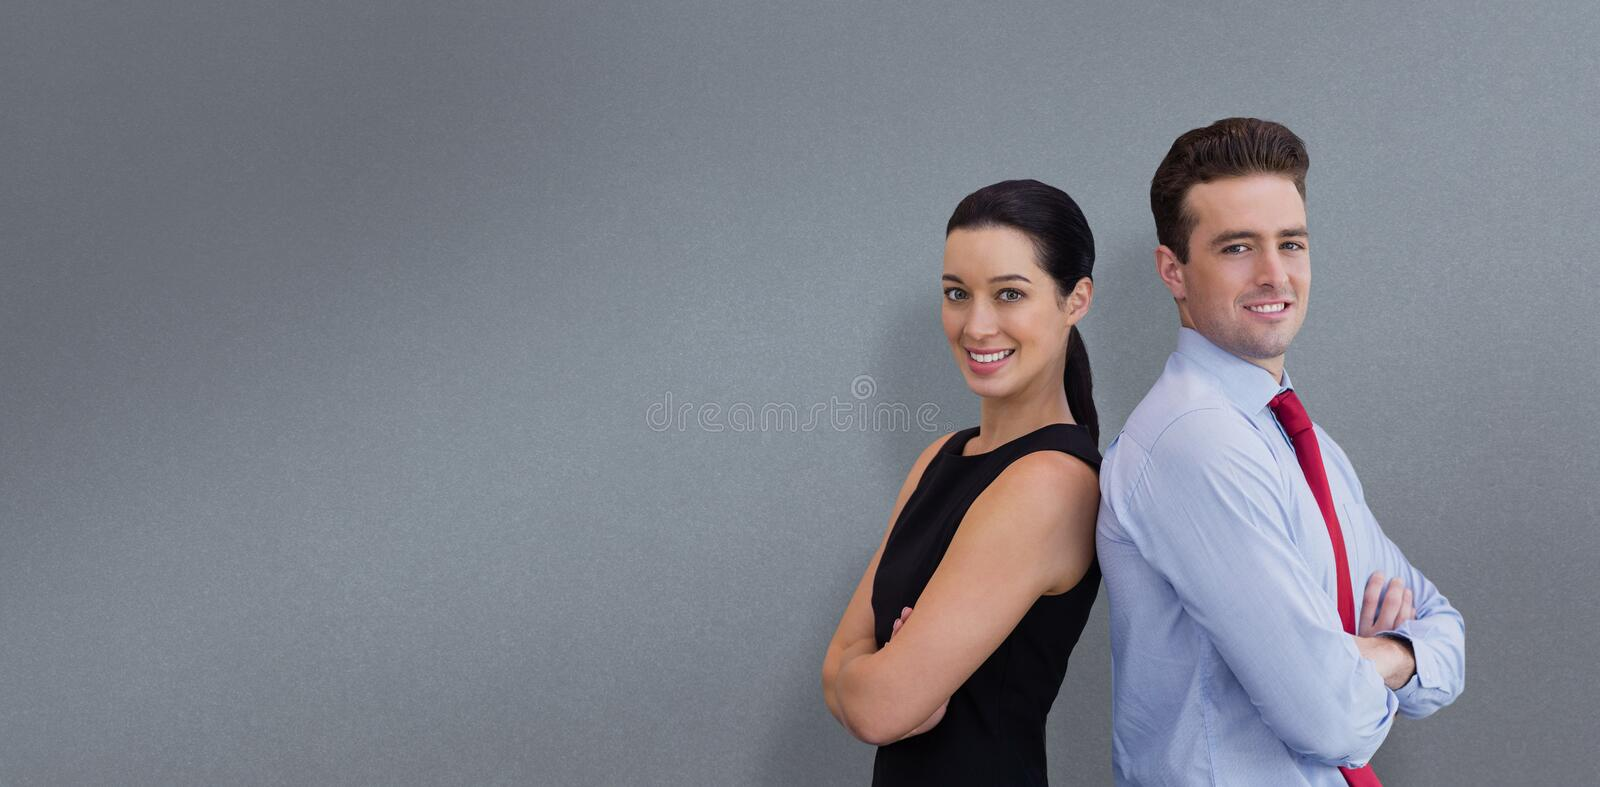 Composite image of portrait of business man and business woman posing back against back. Portrait of business men and business women posing back against back royalty free stock photo